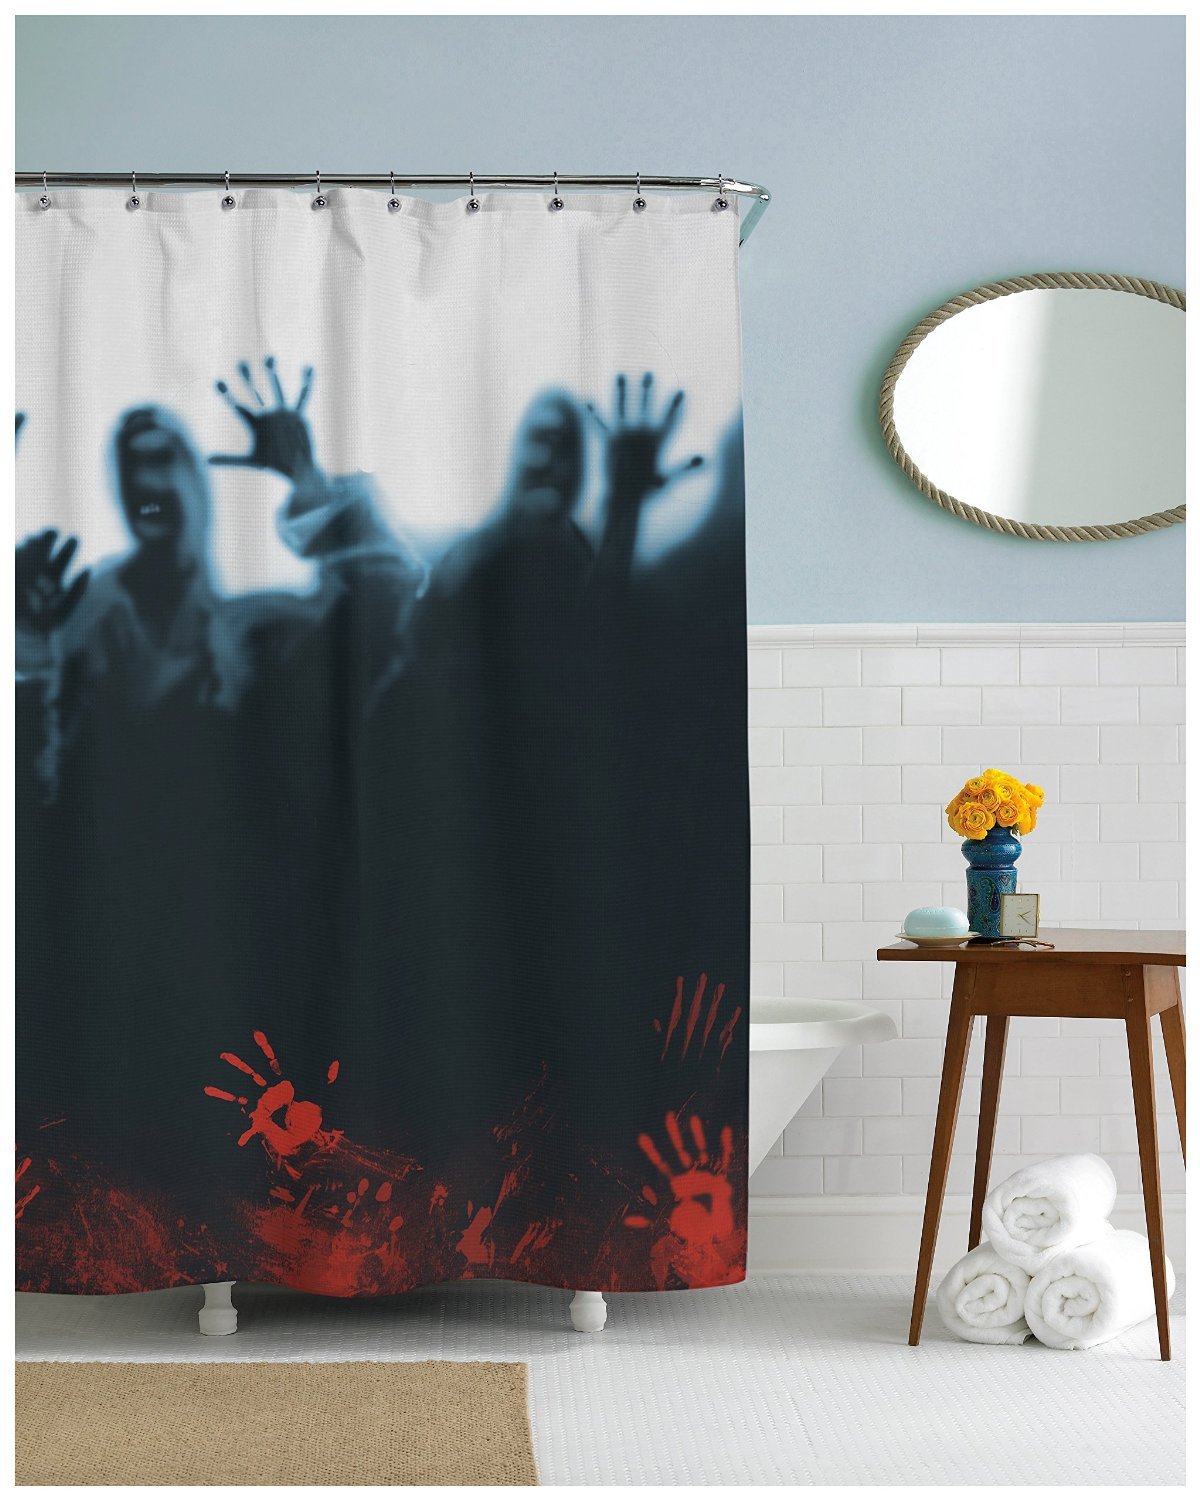 Halloween shower curtain - Super Scary Zombie Mob Shower Curtain Zombie_herd_shower_curtain_scary_zombies Zombie_herd_shower_curtain_scary_zombies